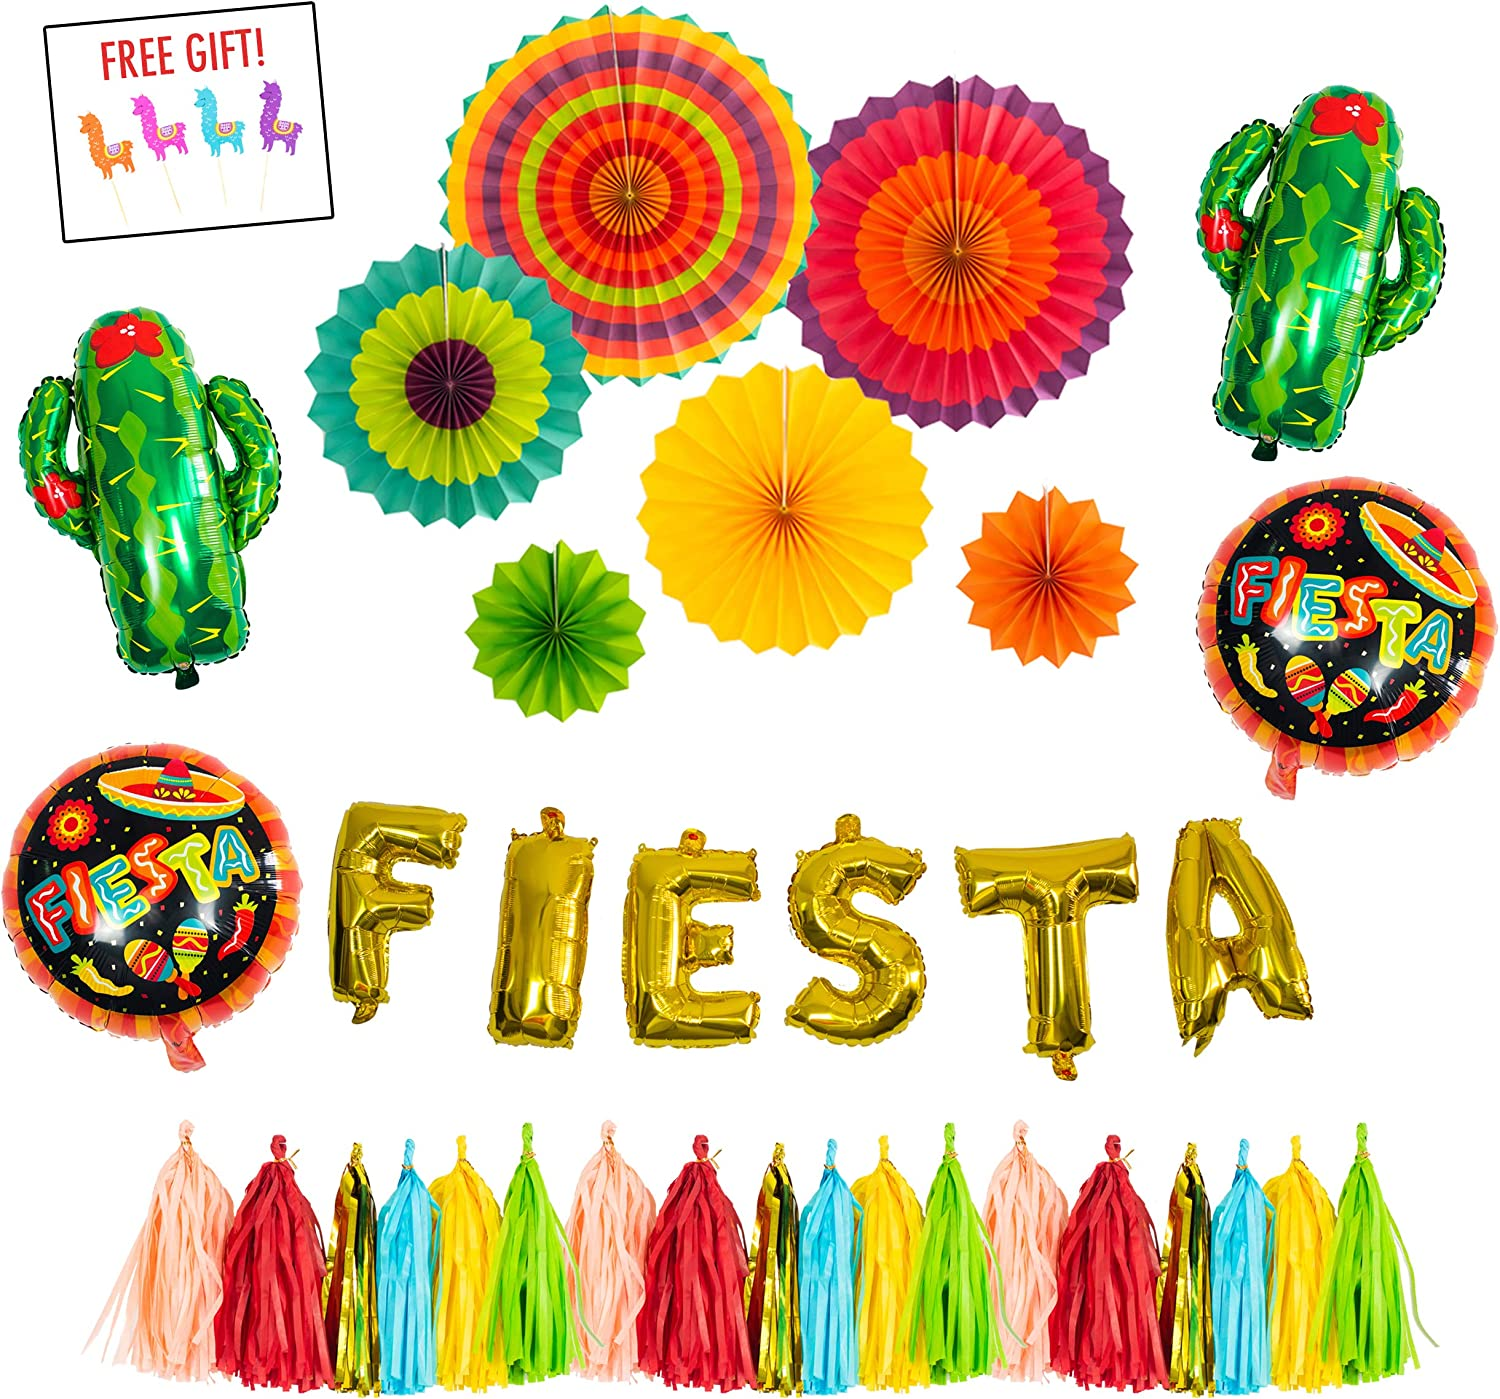 FIESTA PARTY Decorations Supplies kit - Cactus decor foil Balloons, Gold Fiesta balloon banner, Fiesta helium balloons, Coco party paper tassel garland, Mexican party style paper fans- Cinco de mayo